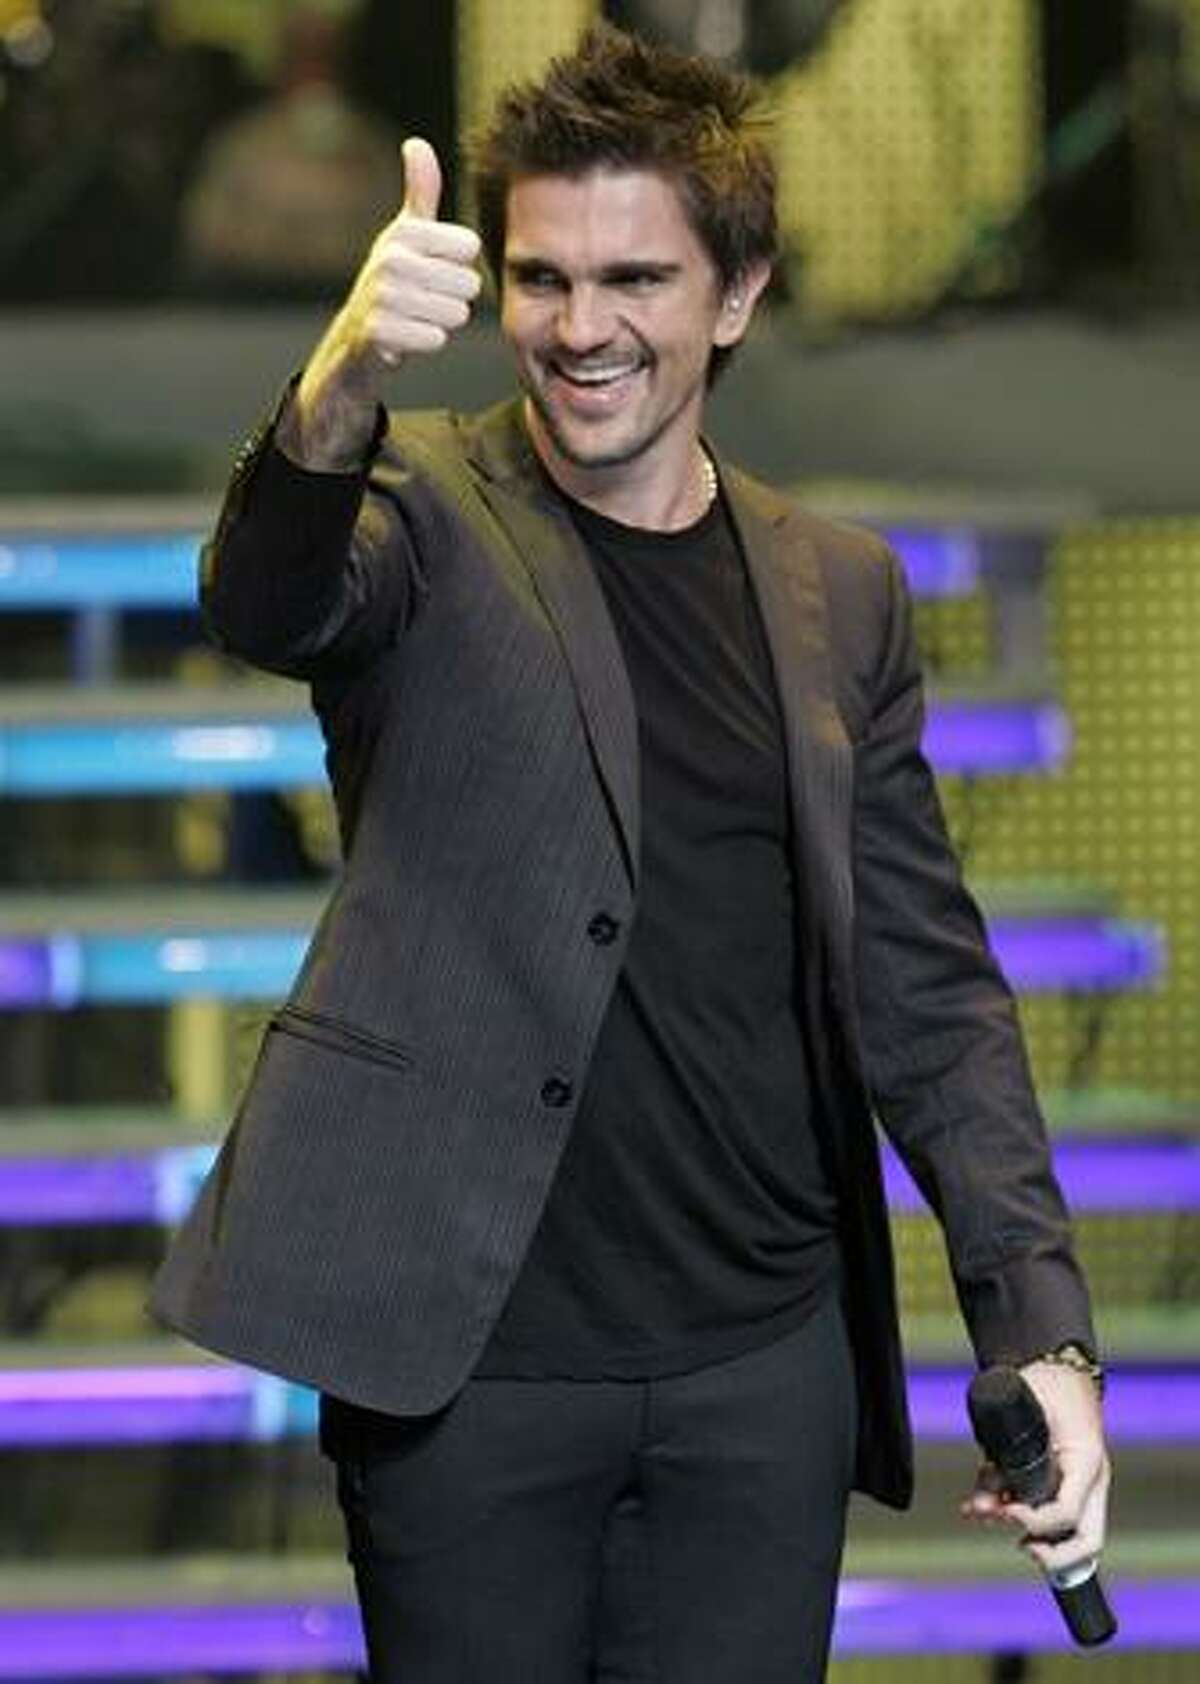 FILE - In this March 10, 2008 file photo Colombian rock star Juanes reacts after a performance during the Casandra awards in Santo Domingo. (AP Photo/Ramon Espinosa, File)